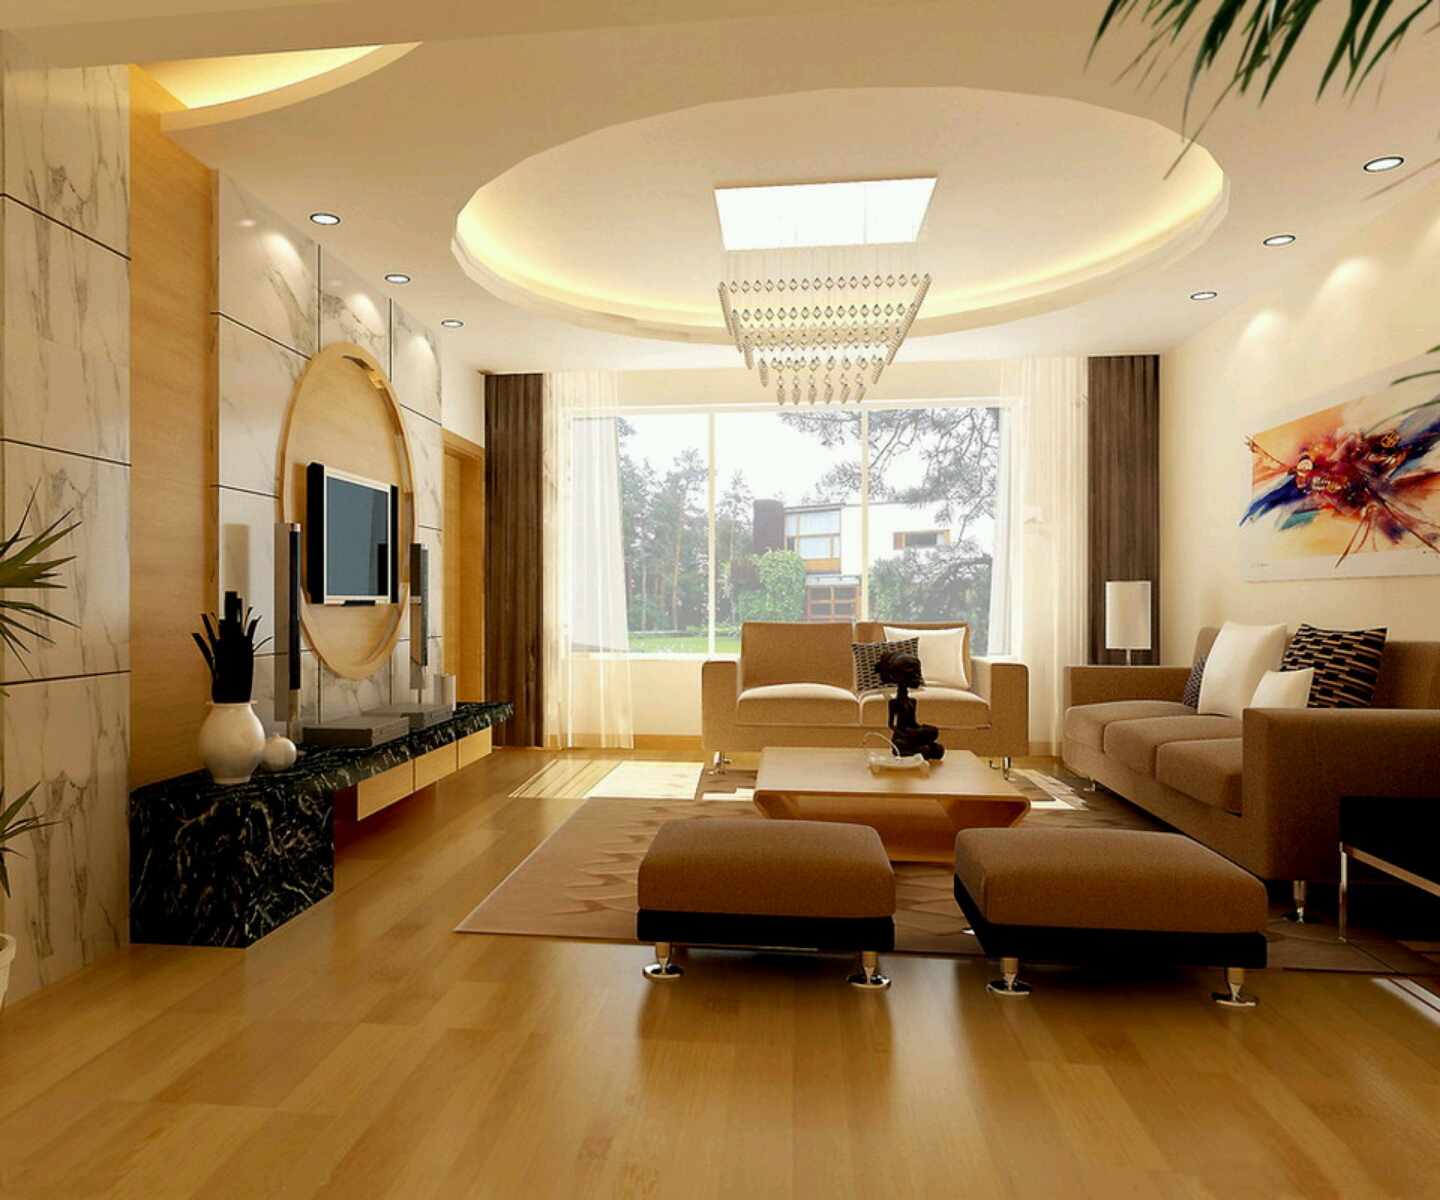 Modern interior decoration living rooms ceiling designs for Homey living room designs